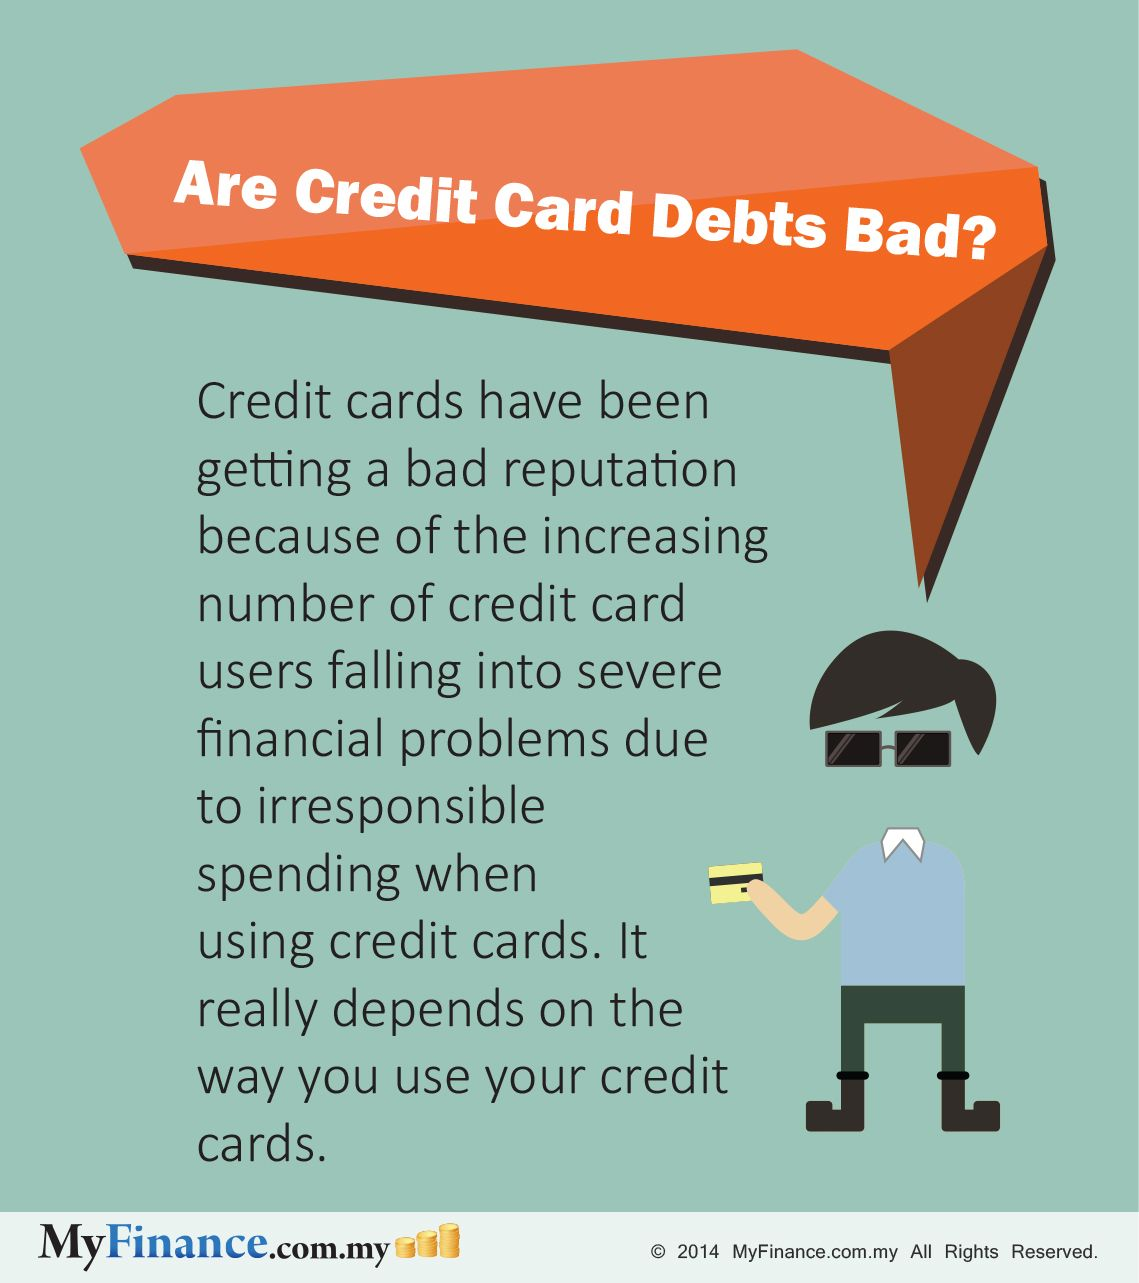 Credit cards have been getting a bad reputation because of